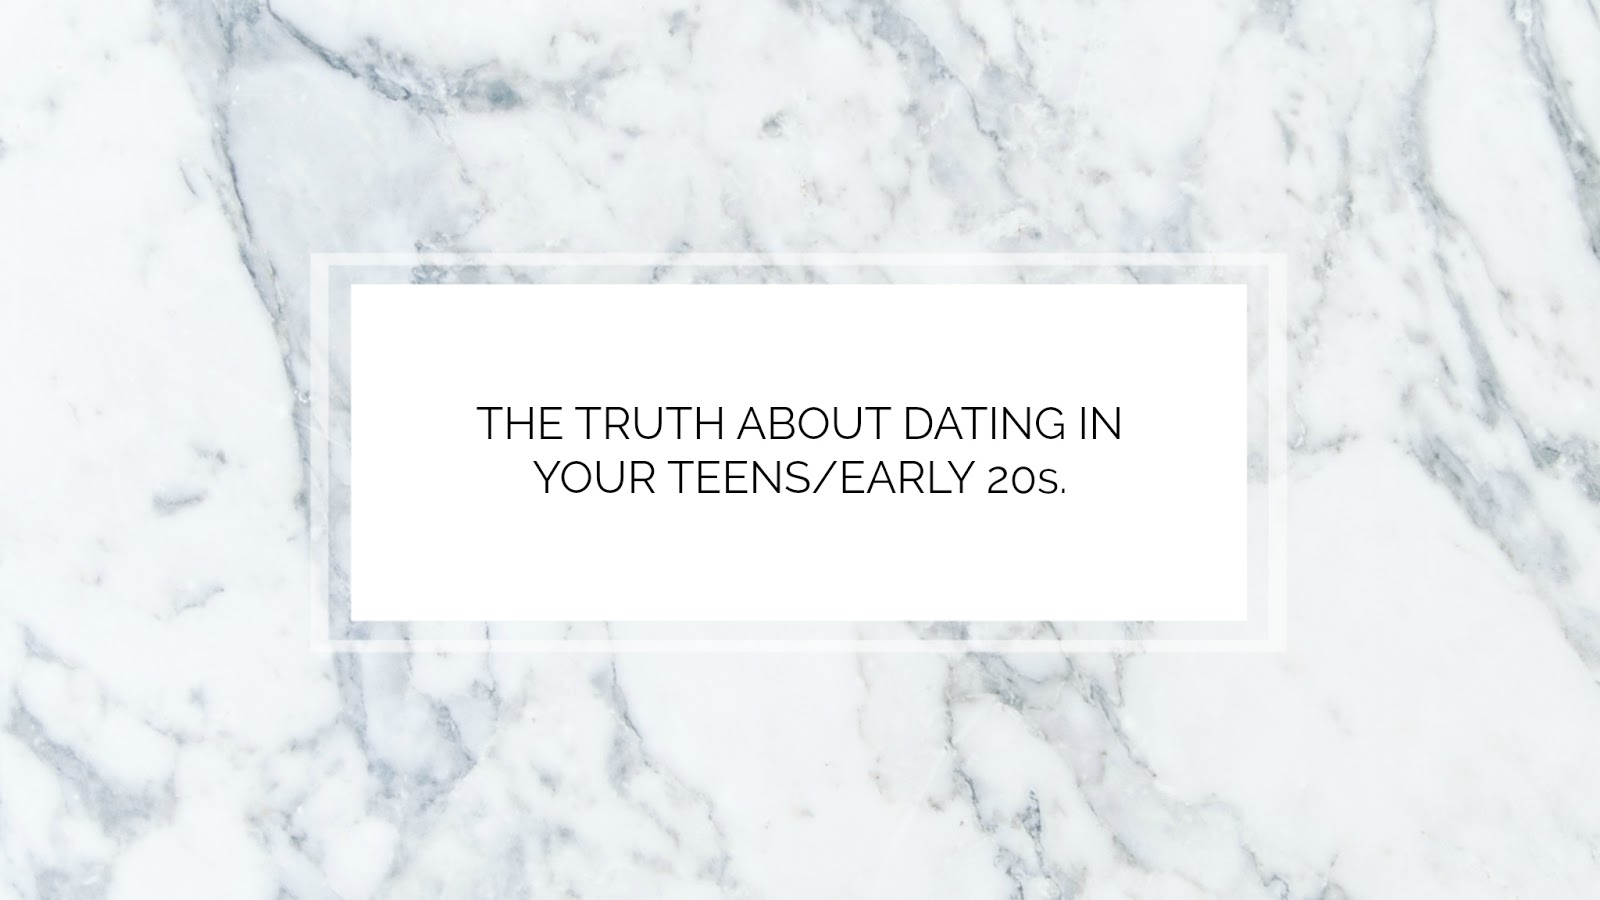 The truth about dating